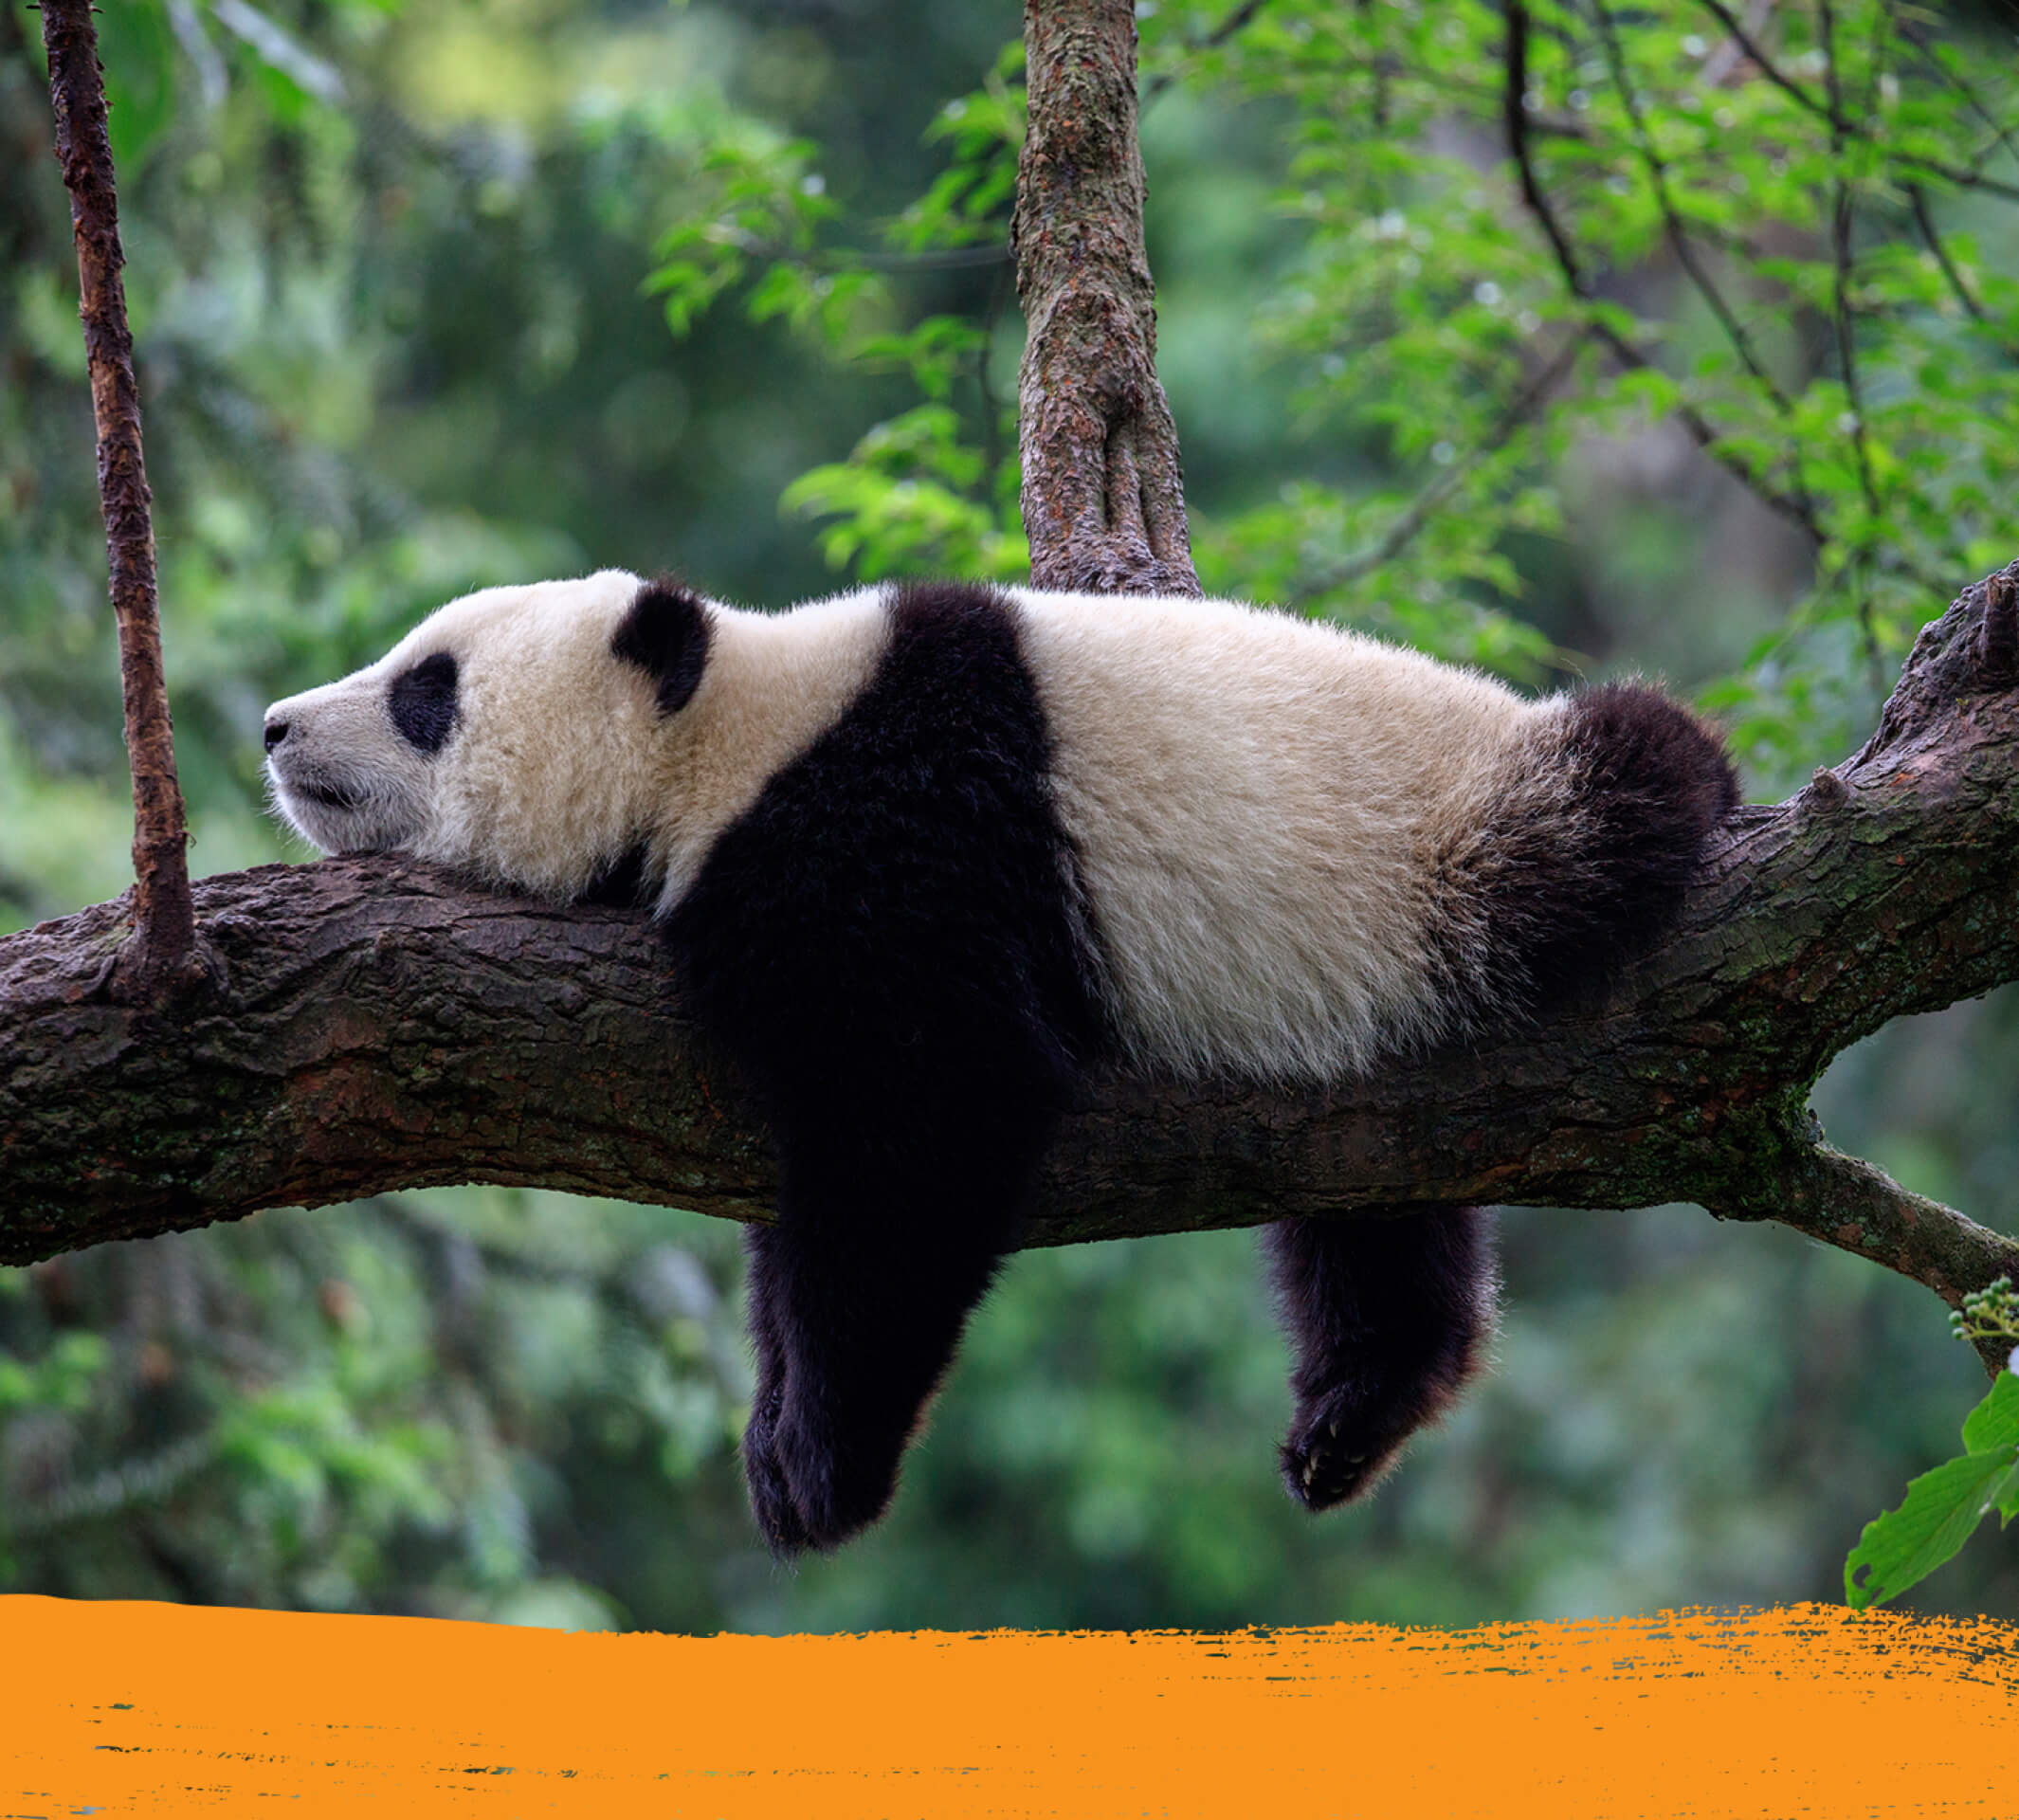 A sleeping panda on a tree in its natural habitat